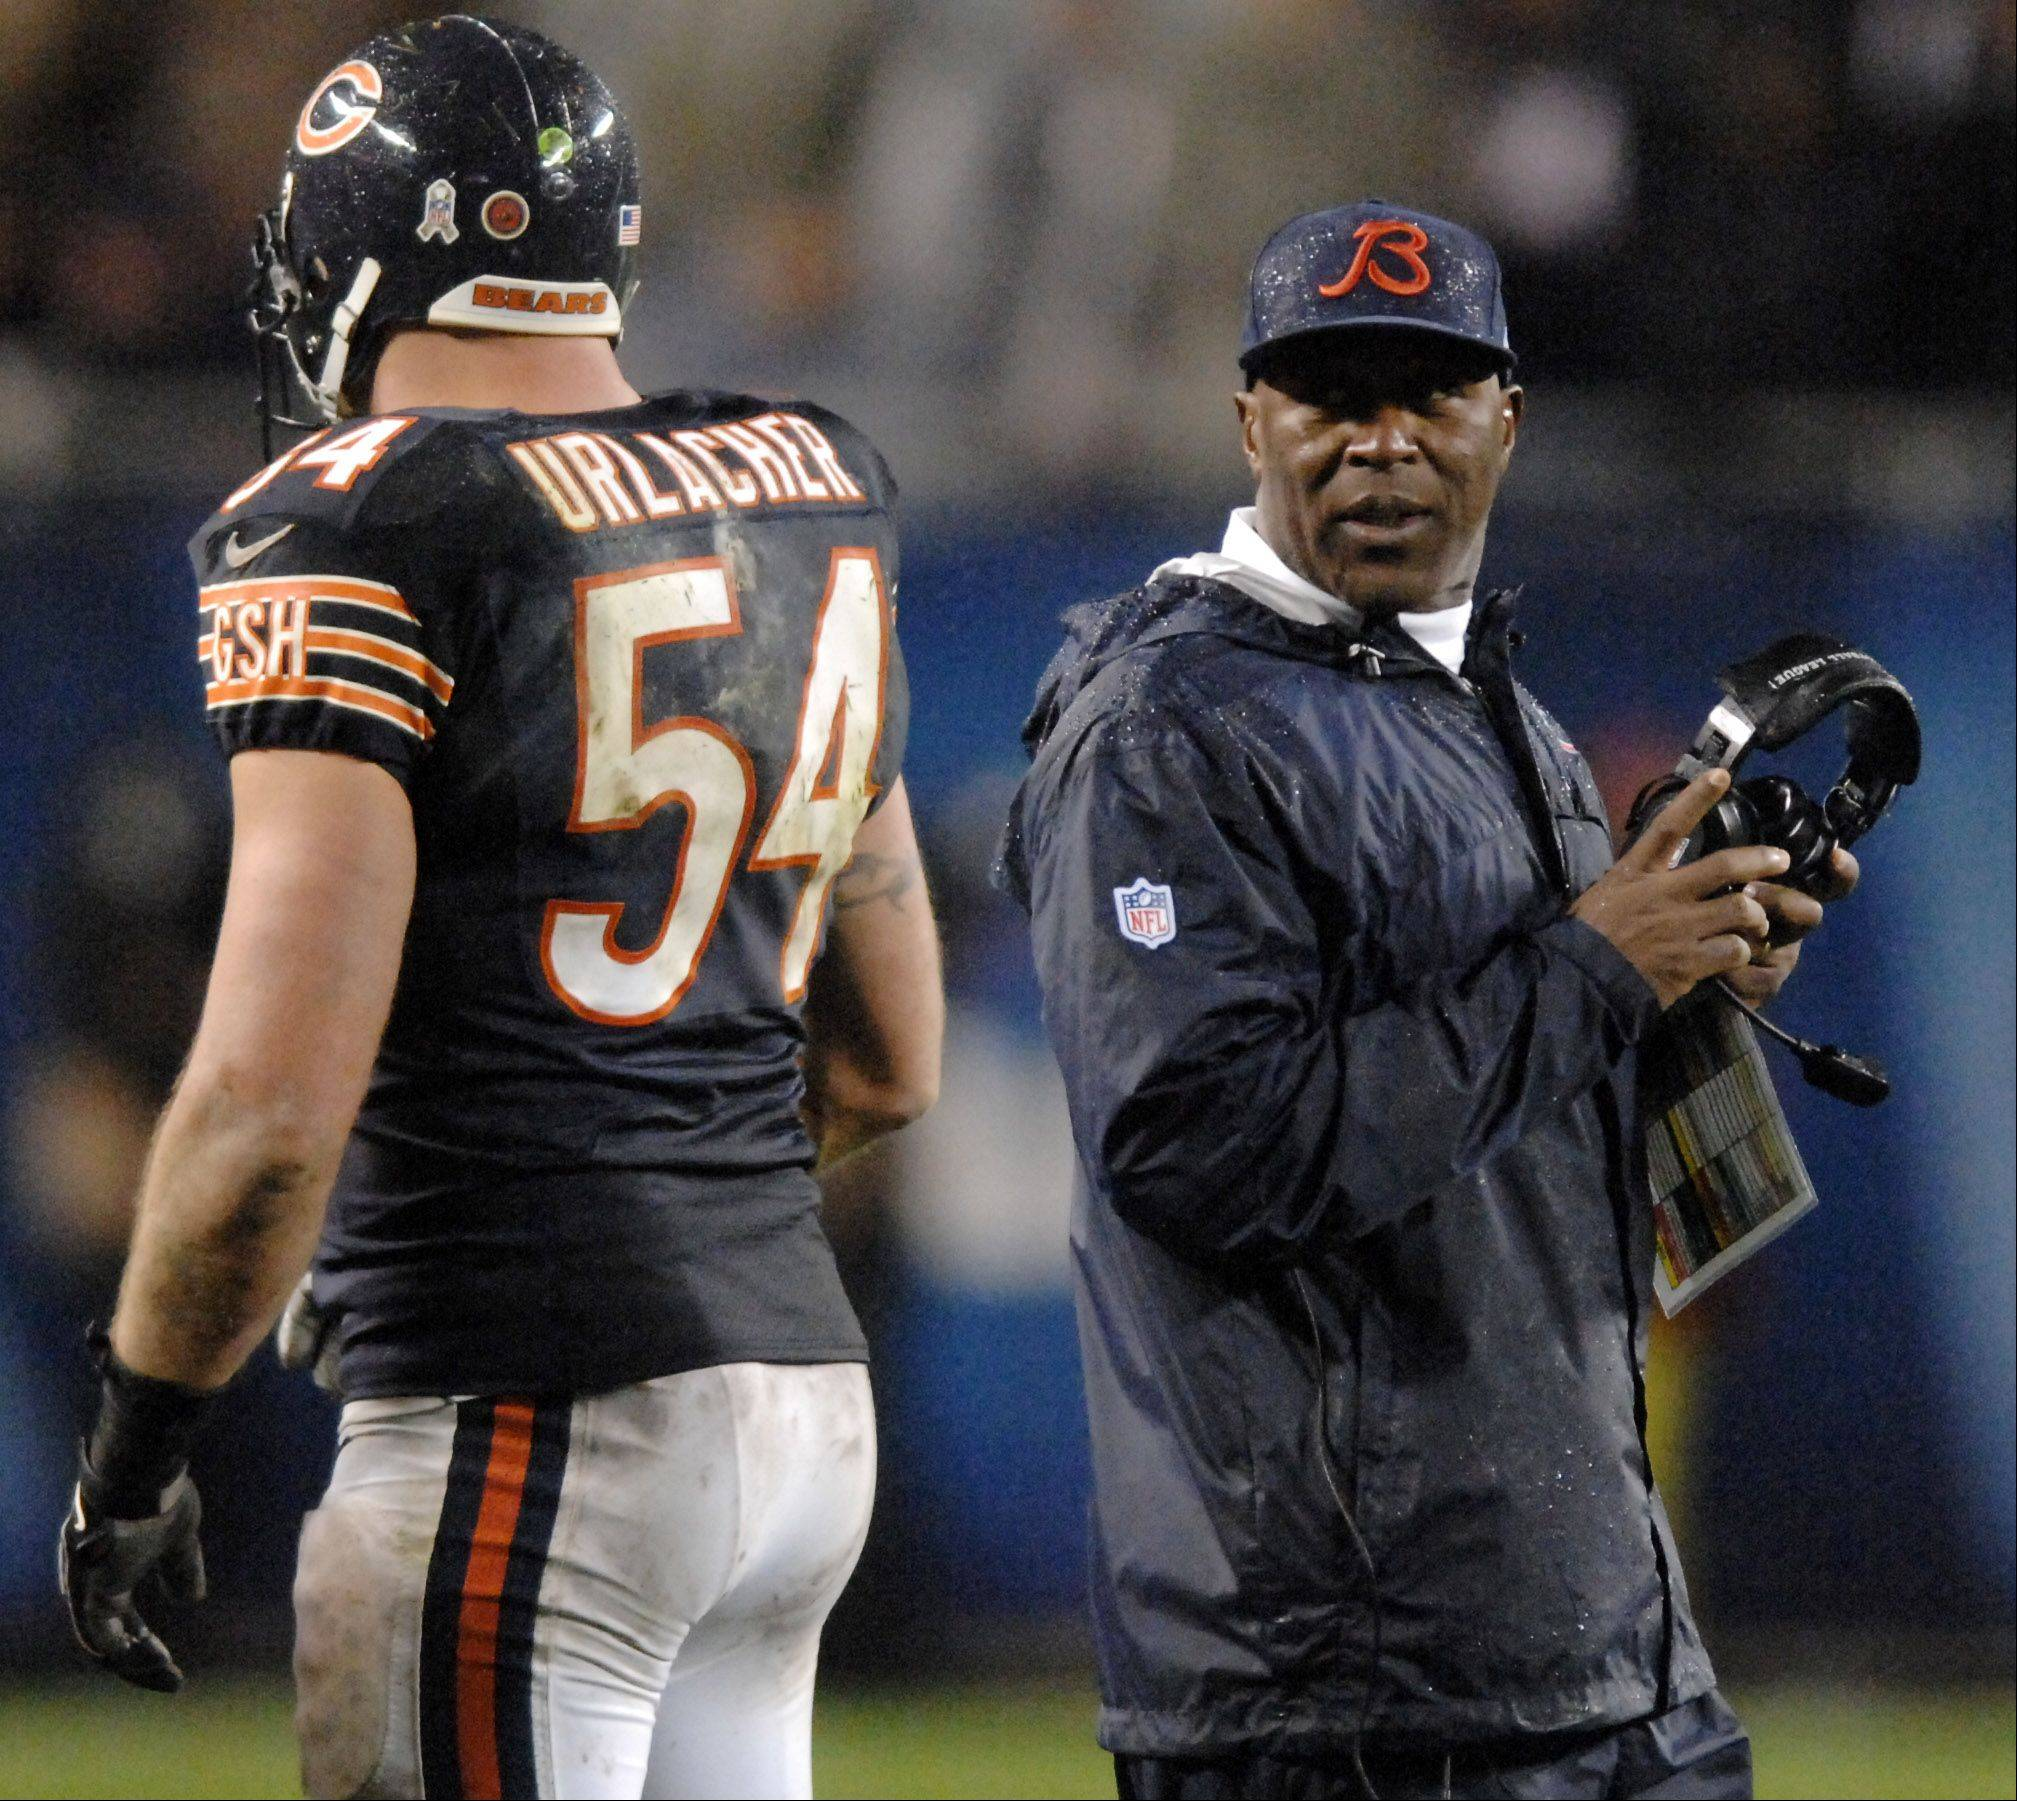 Chicago Bears head coach Lovie Smith has a word with linebacker Brian Urlacher (54) in the second half during Sunday's game at Soldier Field in Chicago.